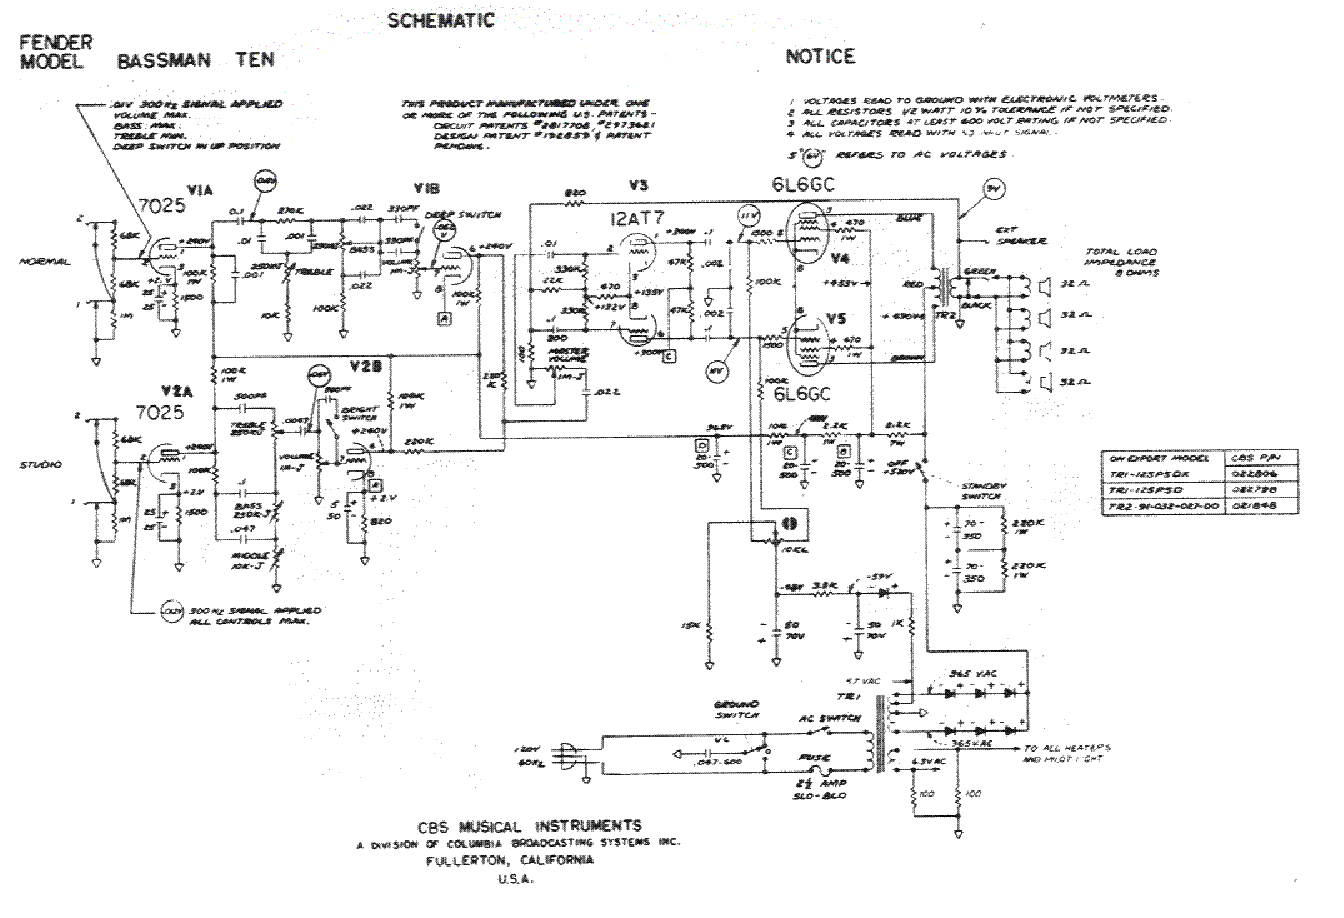 Fender Bassman Ten Wiring Schematic Opinions About Diagram Deluxe Reverb 10 Sch Service Manual Download Schematics Eeprom Rh Elektrotanya Com 1959 70